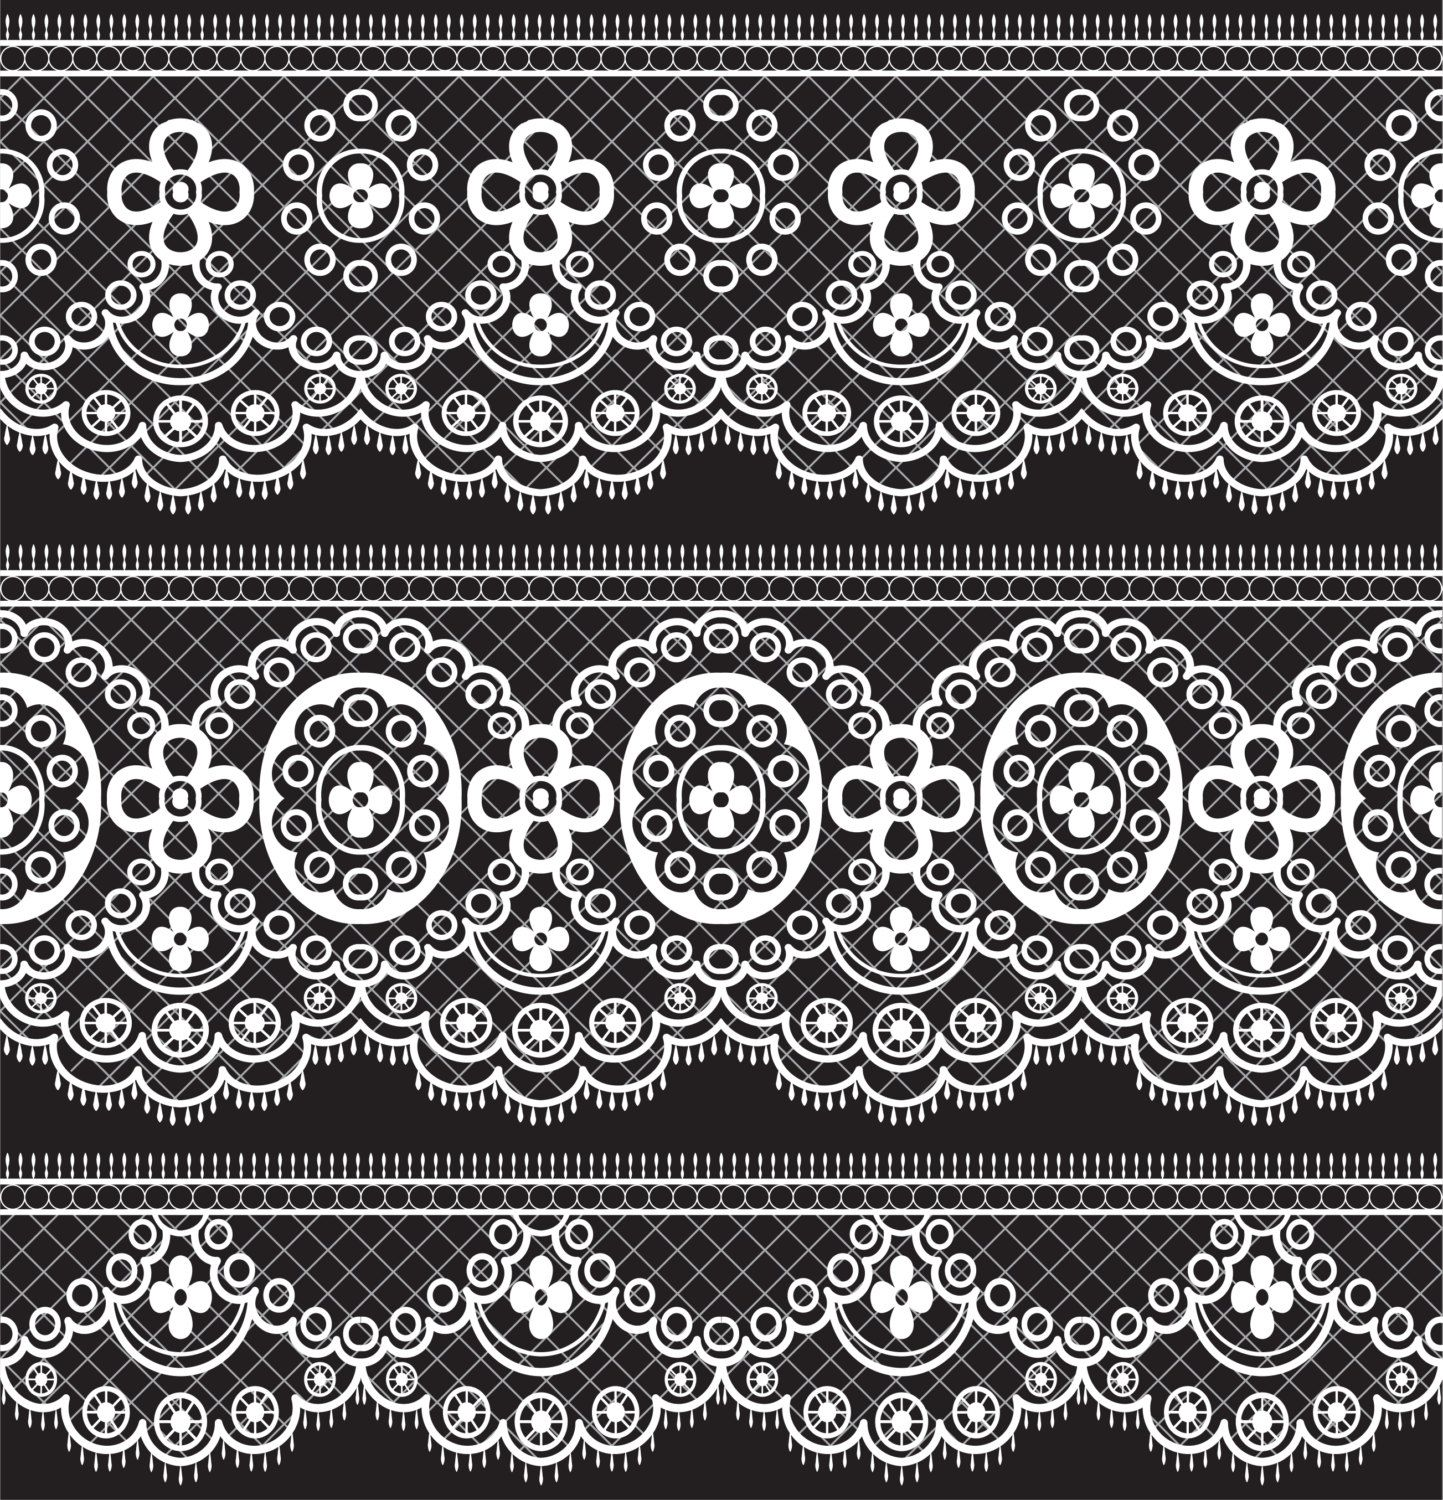 Lace Borders Clipart, White Lace Borders, Black Lace.